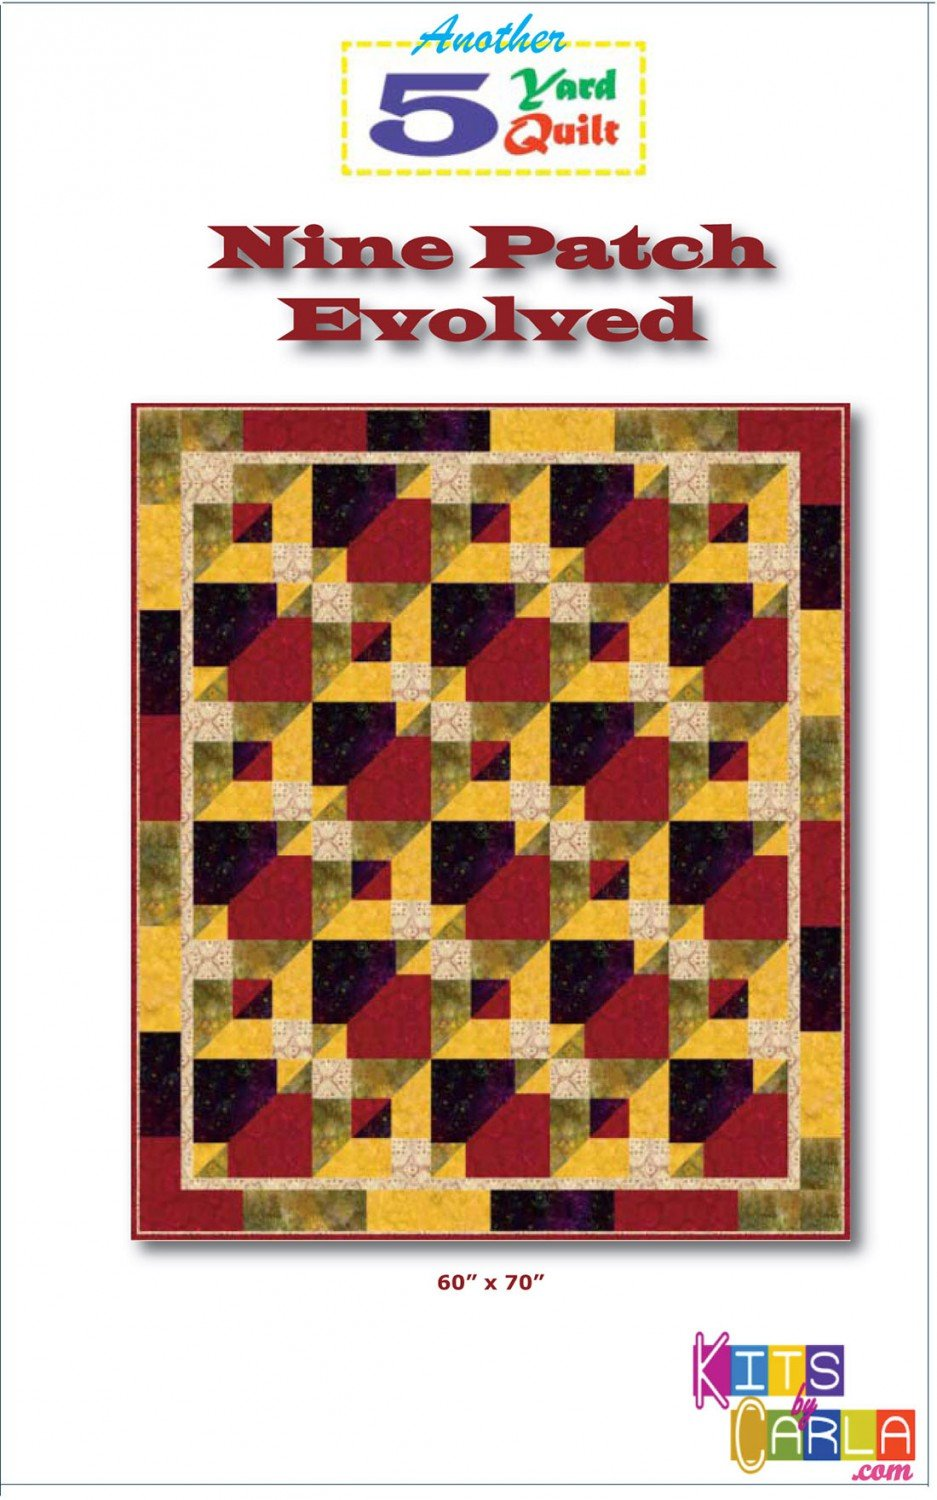 5 Yard Quilt Nine Patch Evolved